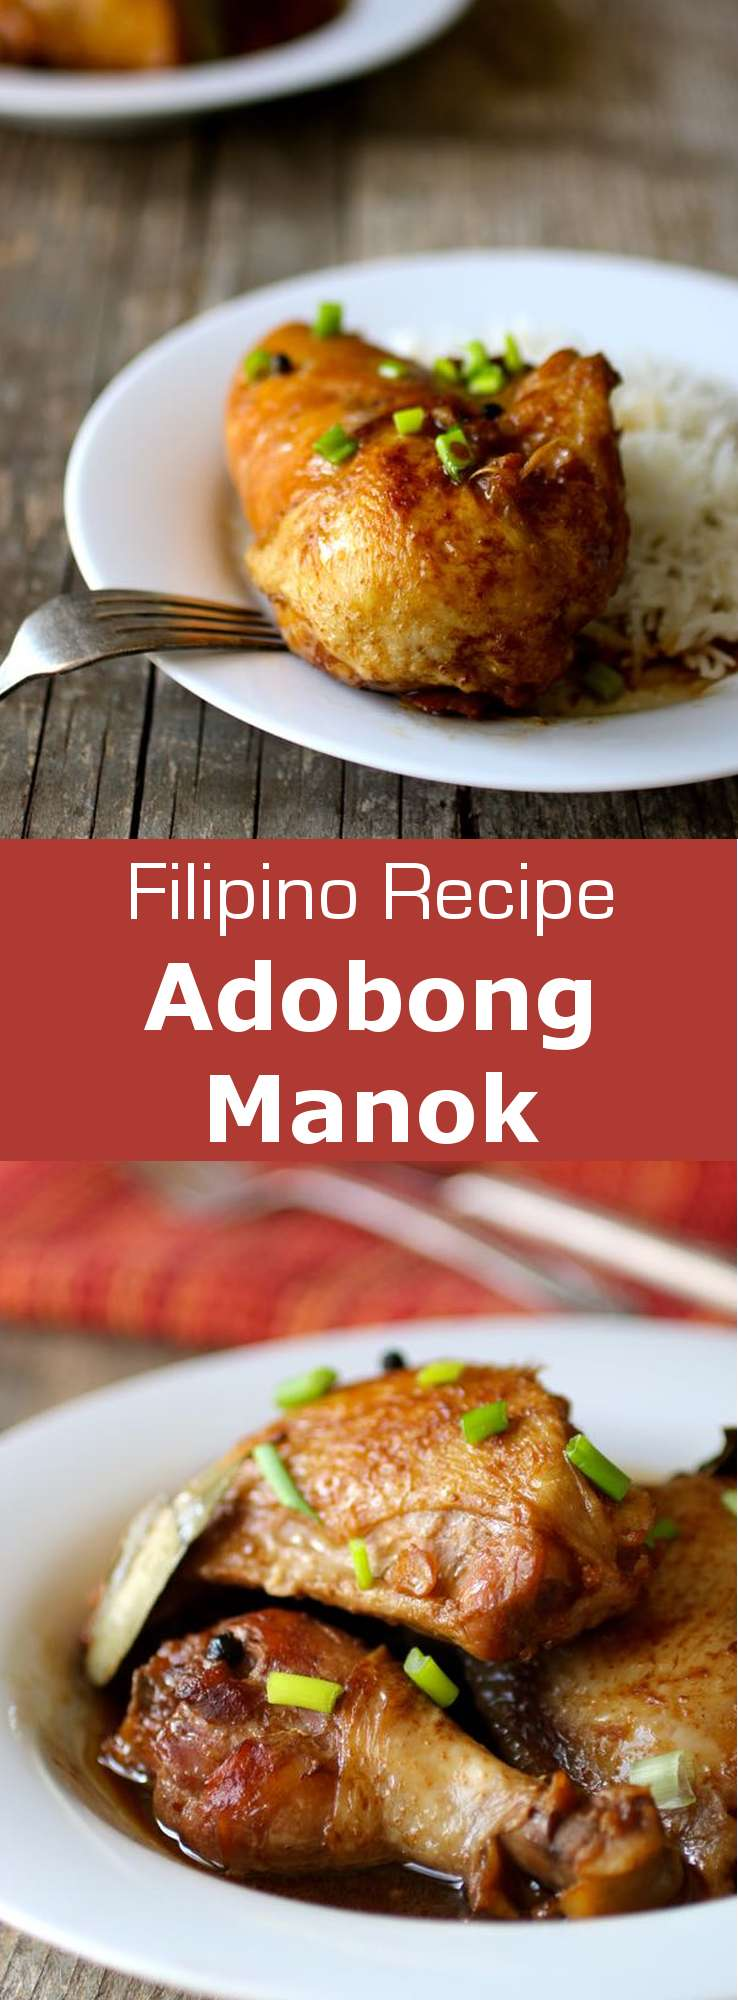 Chicken adobo is a Filipino dish in which chicken marinated in vinegar, soy sauce, garlic and peppercorns, is browned then simmered in the marinade. #Philippines #FilipinoCuisine #WorldCuisine #196flavors